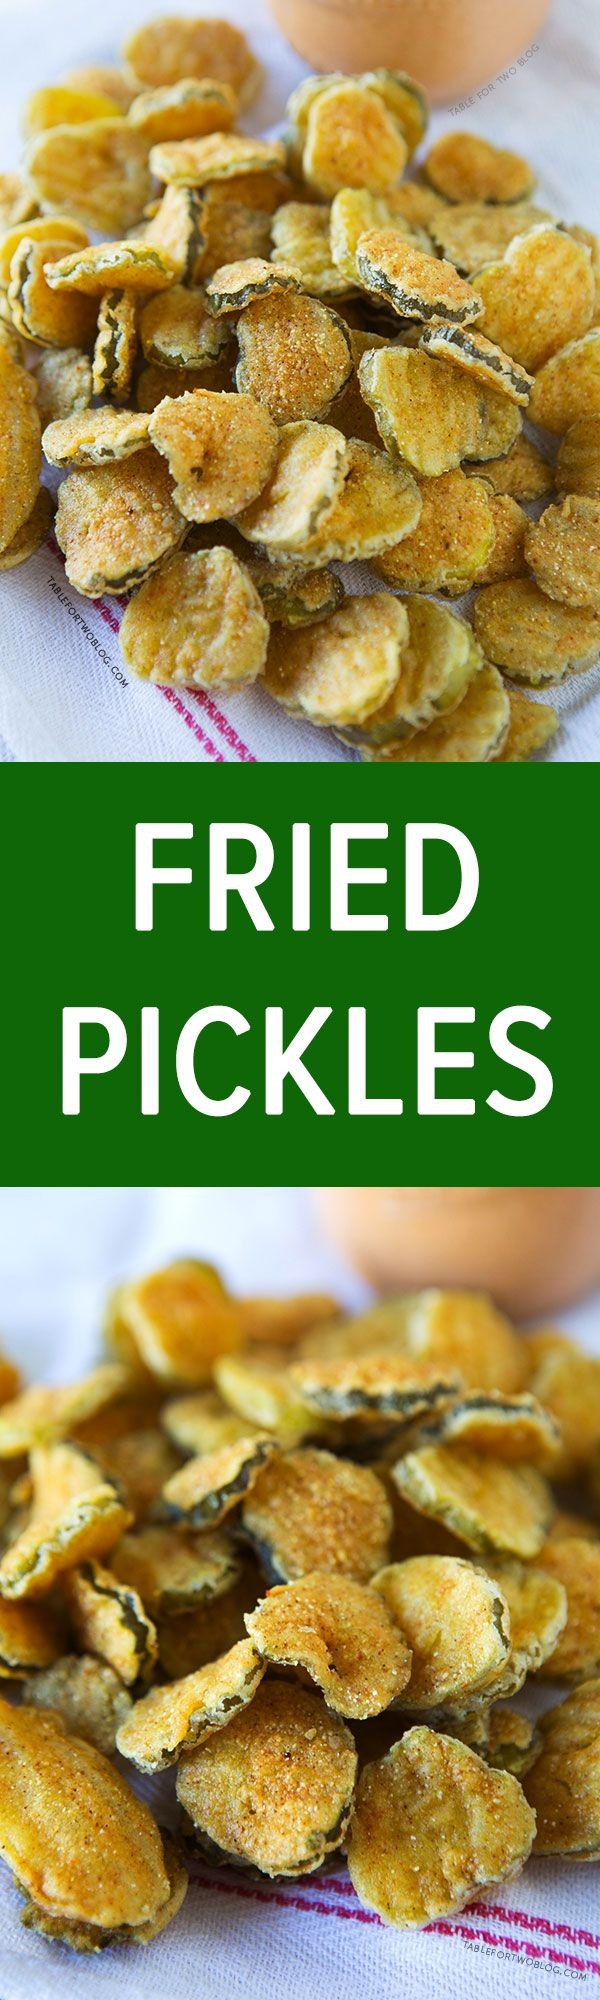 Fried Pickles | tablefortwoblog.com